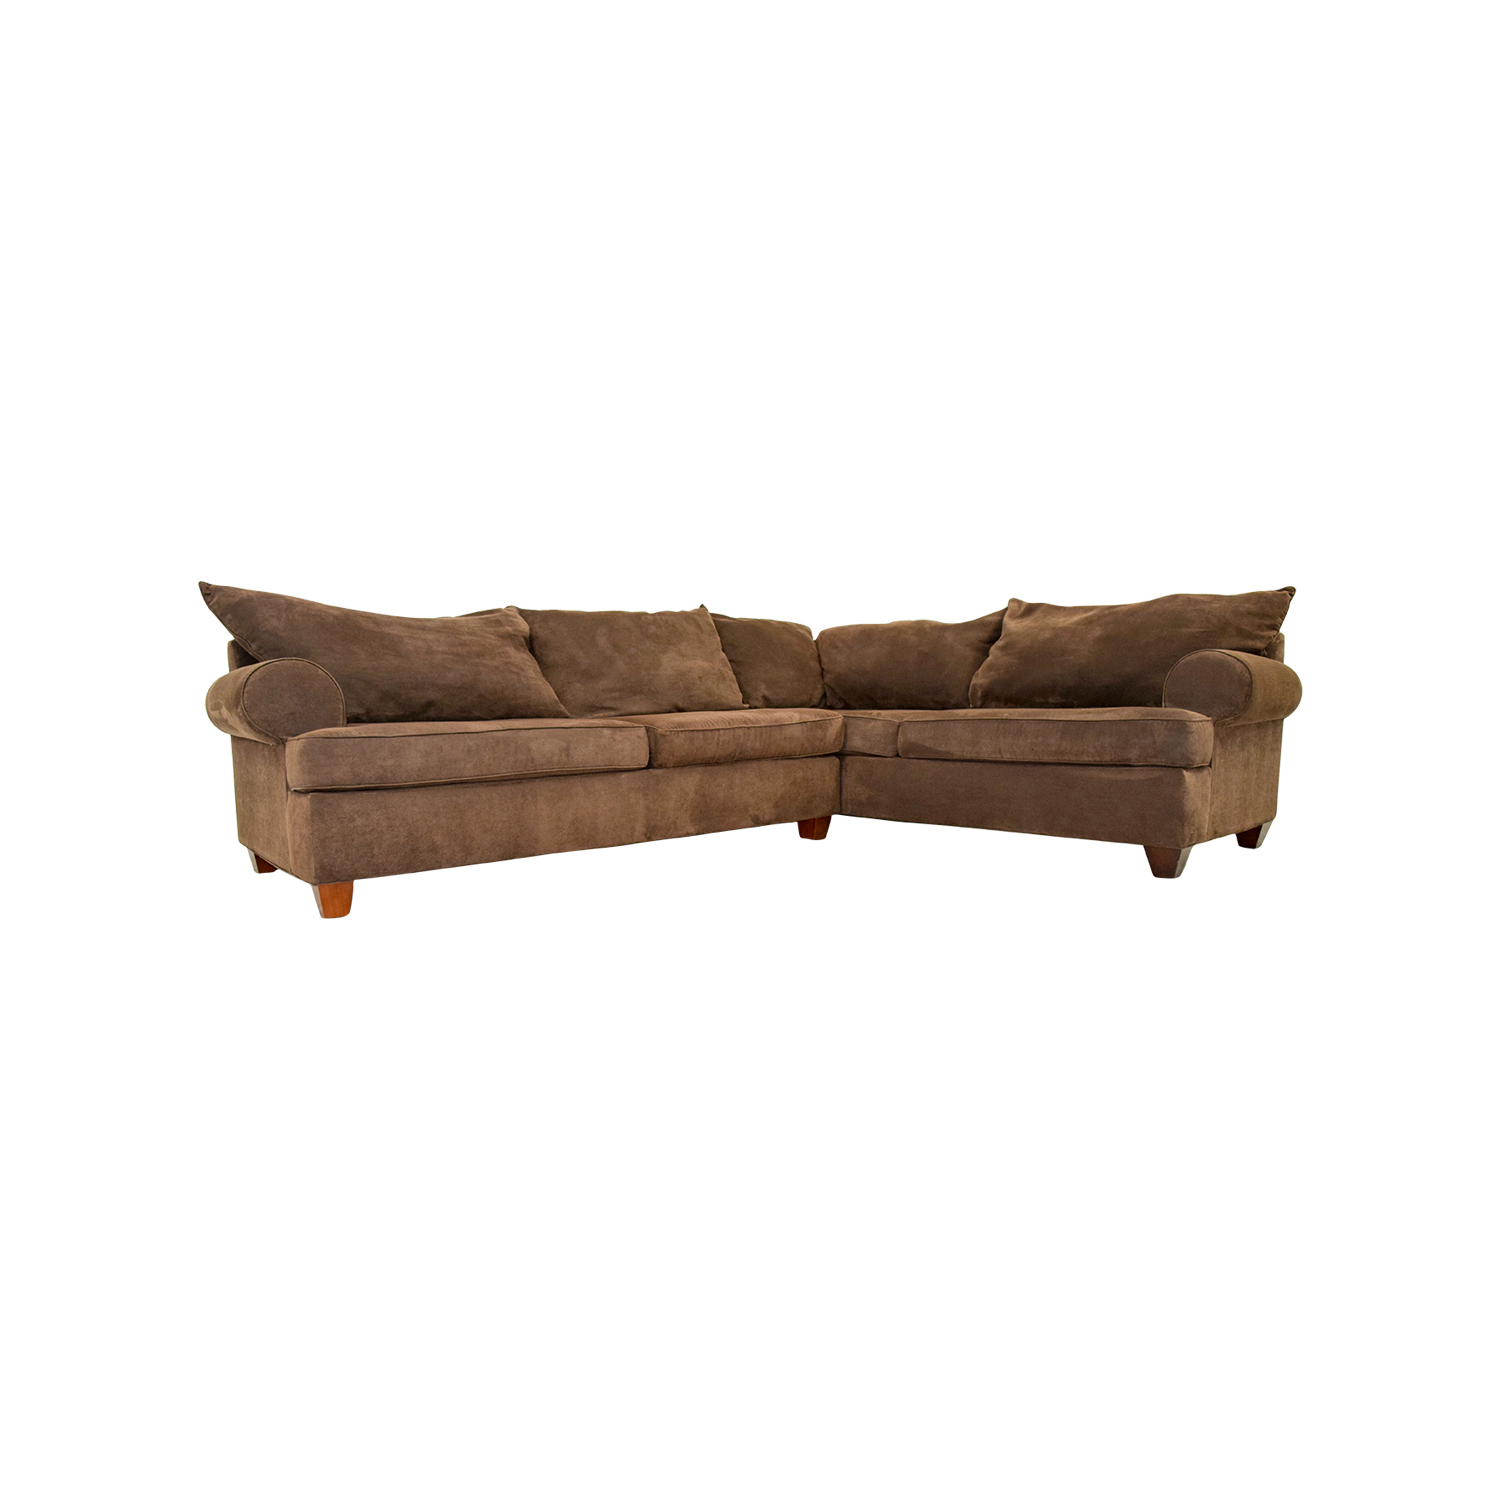 shop Brown Corduroy L-Shaped Sectional Couch